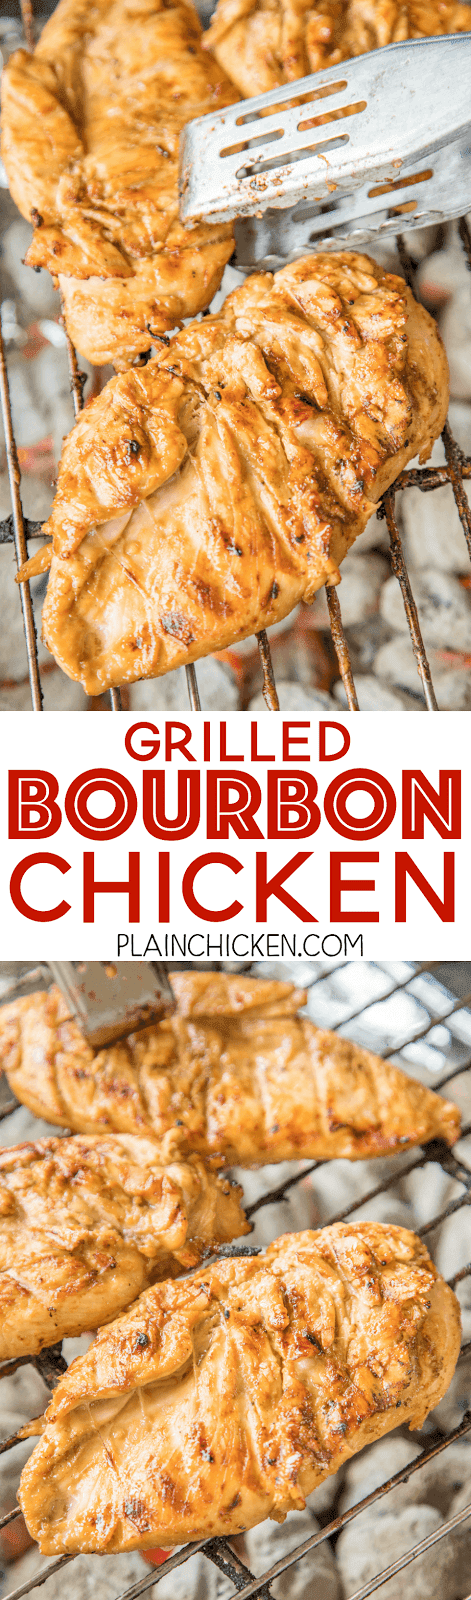 Grilled Bourbon Chicken - seriously delicious!!! Let the chicken marinate a few hours or overnight for maximum flavor. We ate this chicken two days in a row!! Can't wait to make it again this weekend!!! SO tender, juicy and packed full of AMAZING flavor!! Chicken, dijon mustard, red wine vinegar, Worcestershire, bourbon, brown sugar, garlic. THE BEST grilled chicken breast recipe!